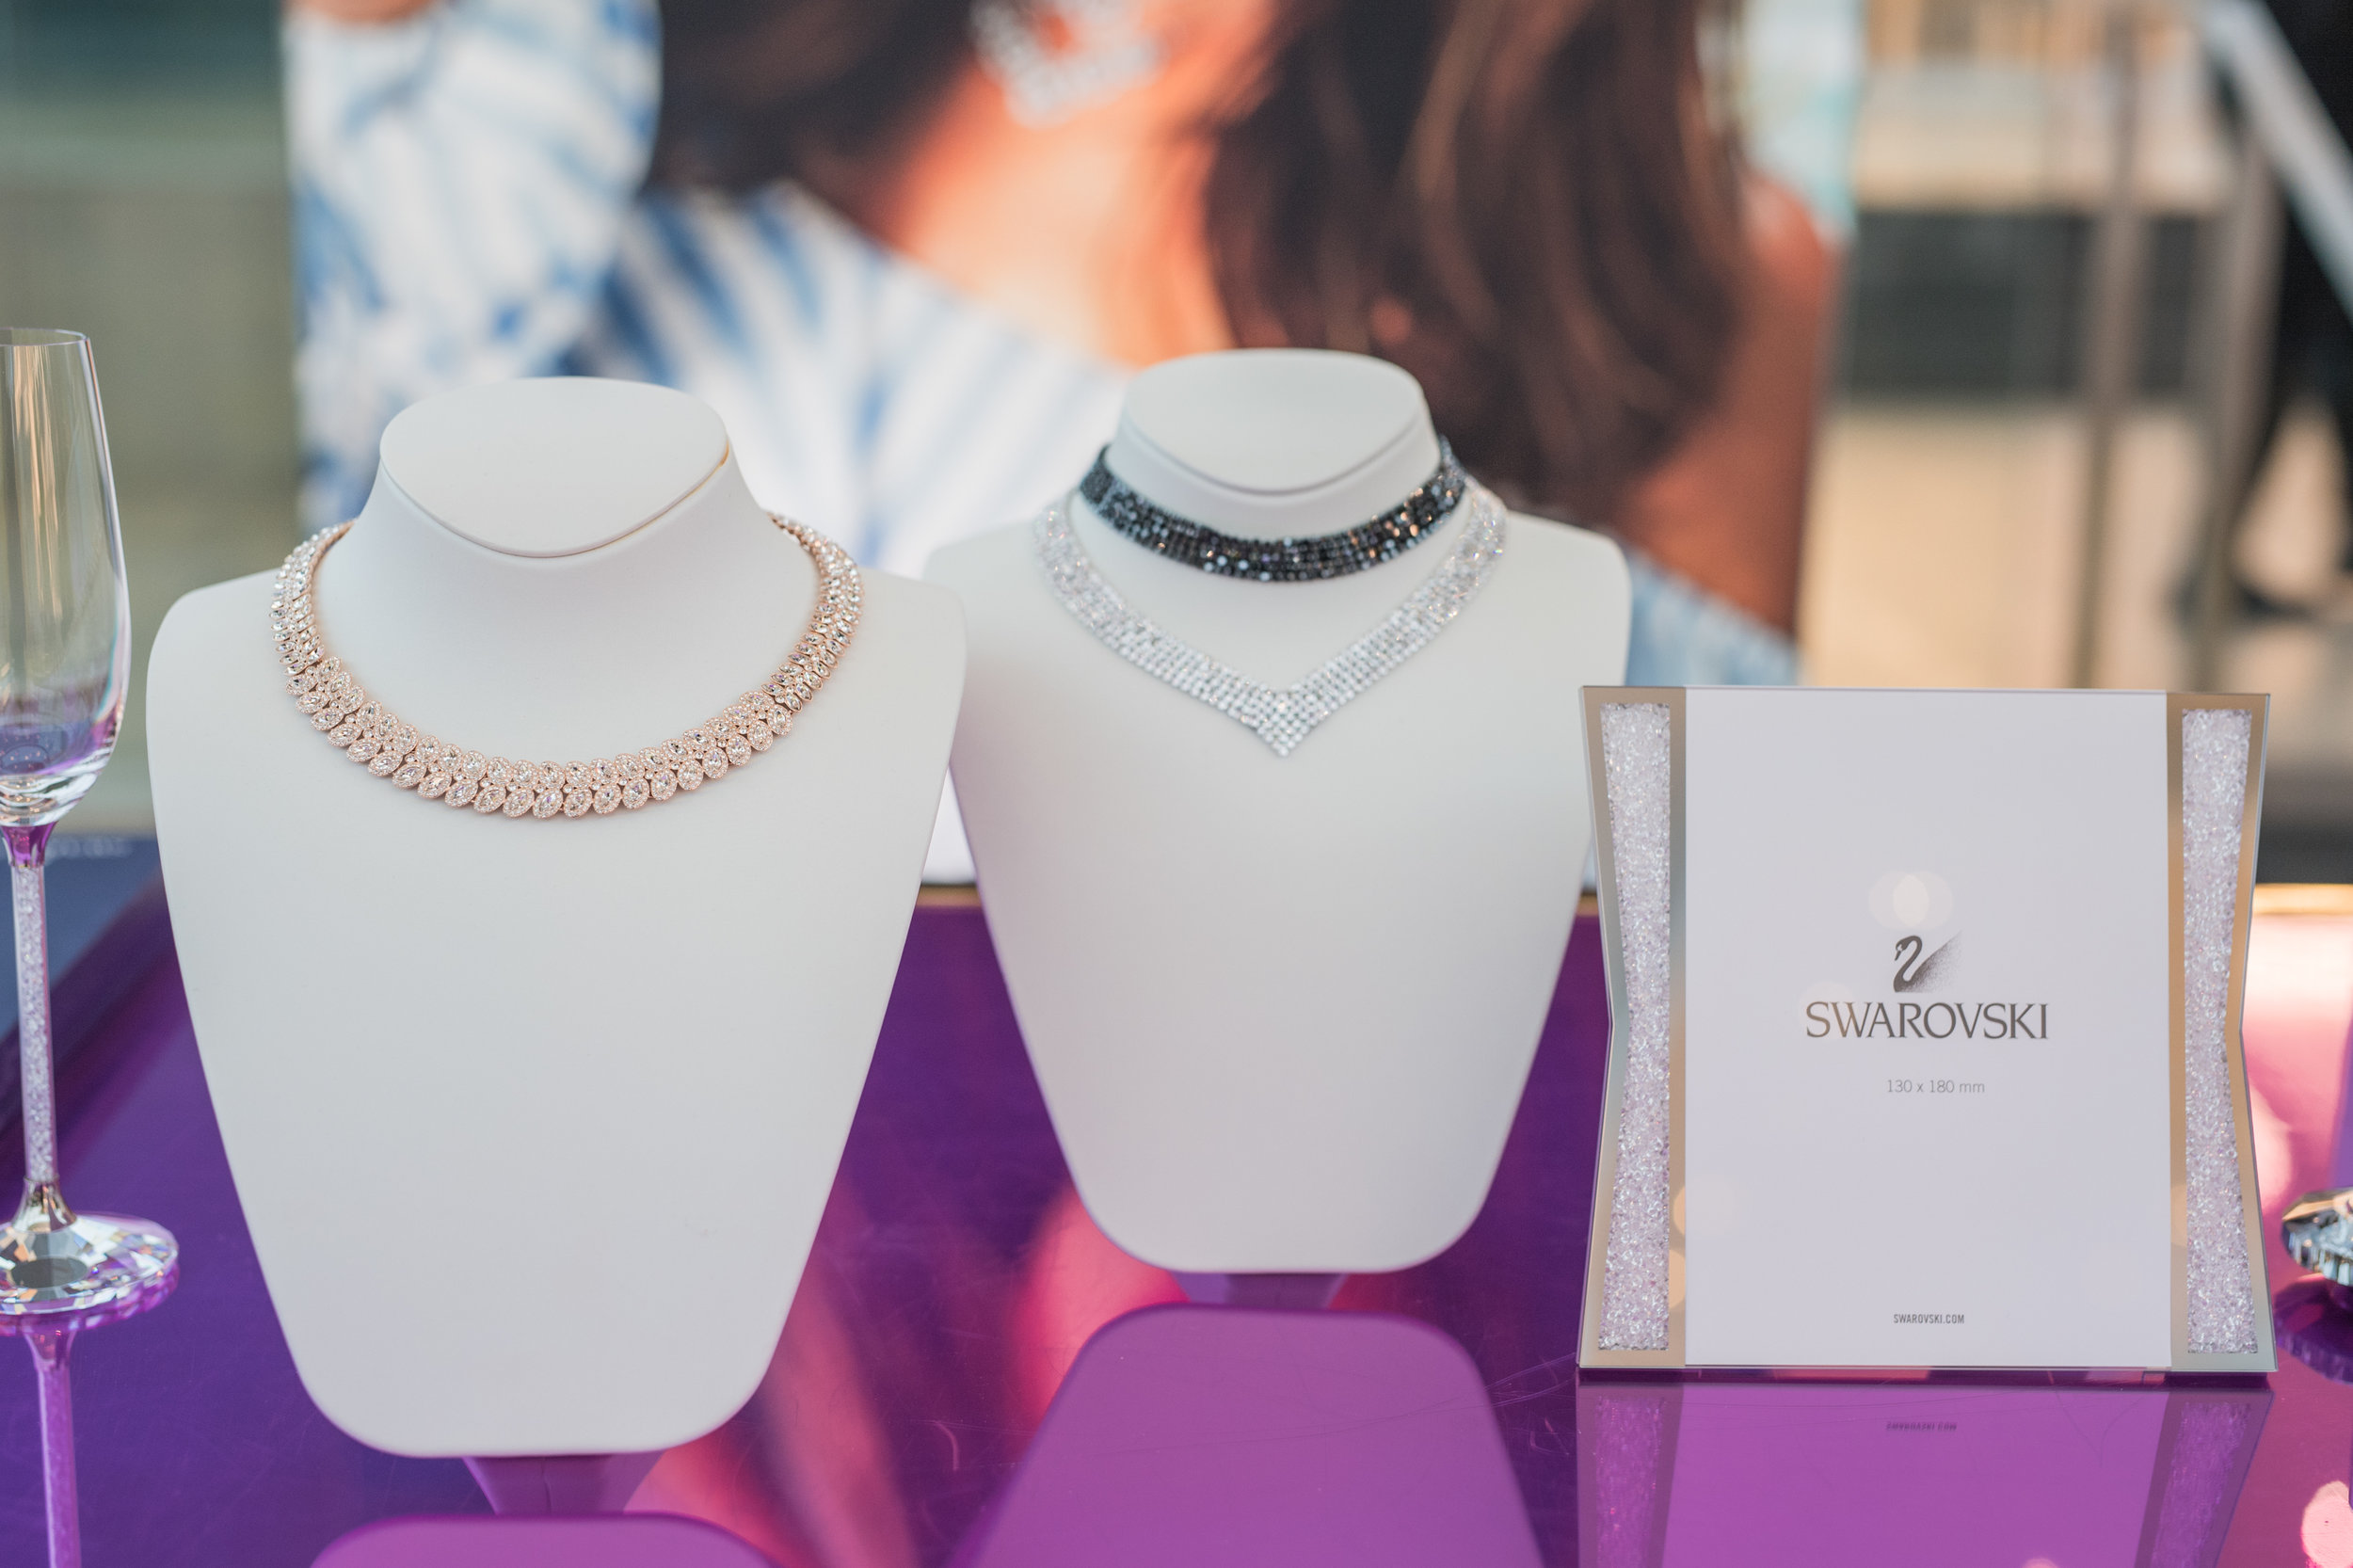 August In Bloom - Swarovski necklace display - #SQ1Bridal (Square One Shopping Centre)